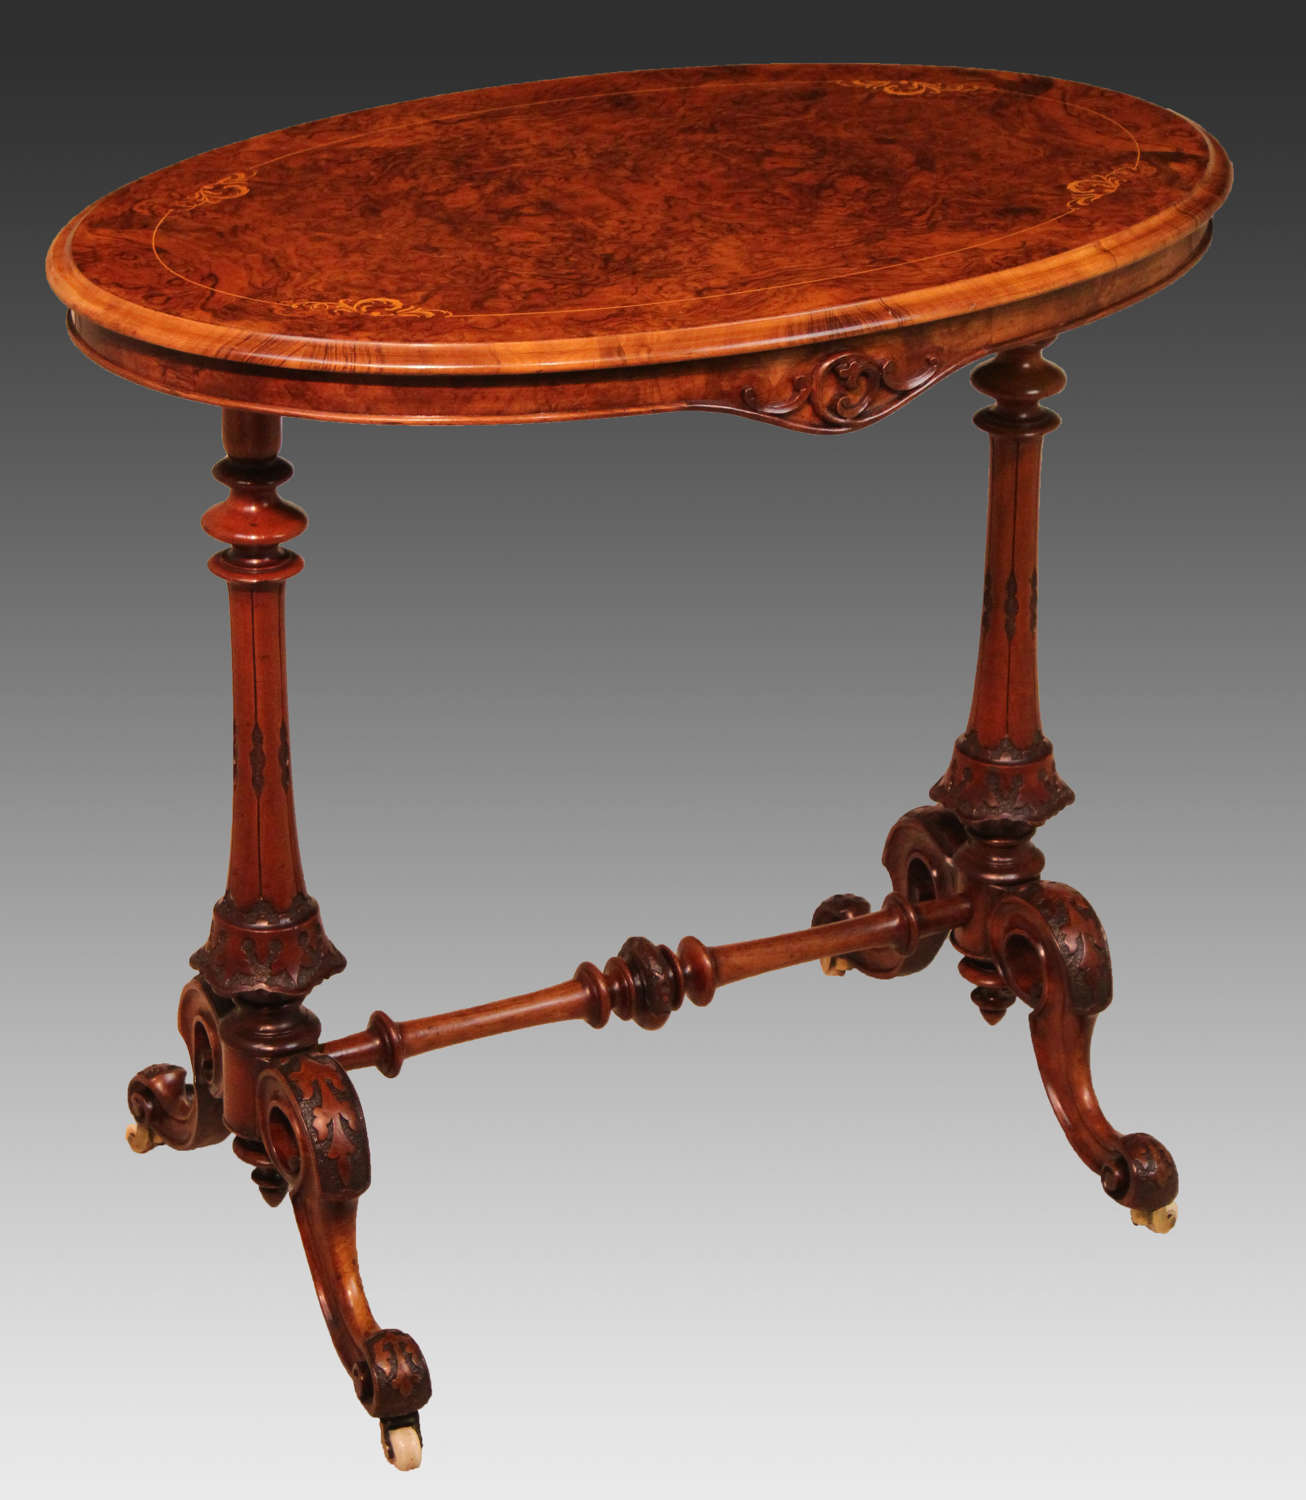 The Quality Victorian Burr-walnut Inlaid Baby Stretcher Table